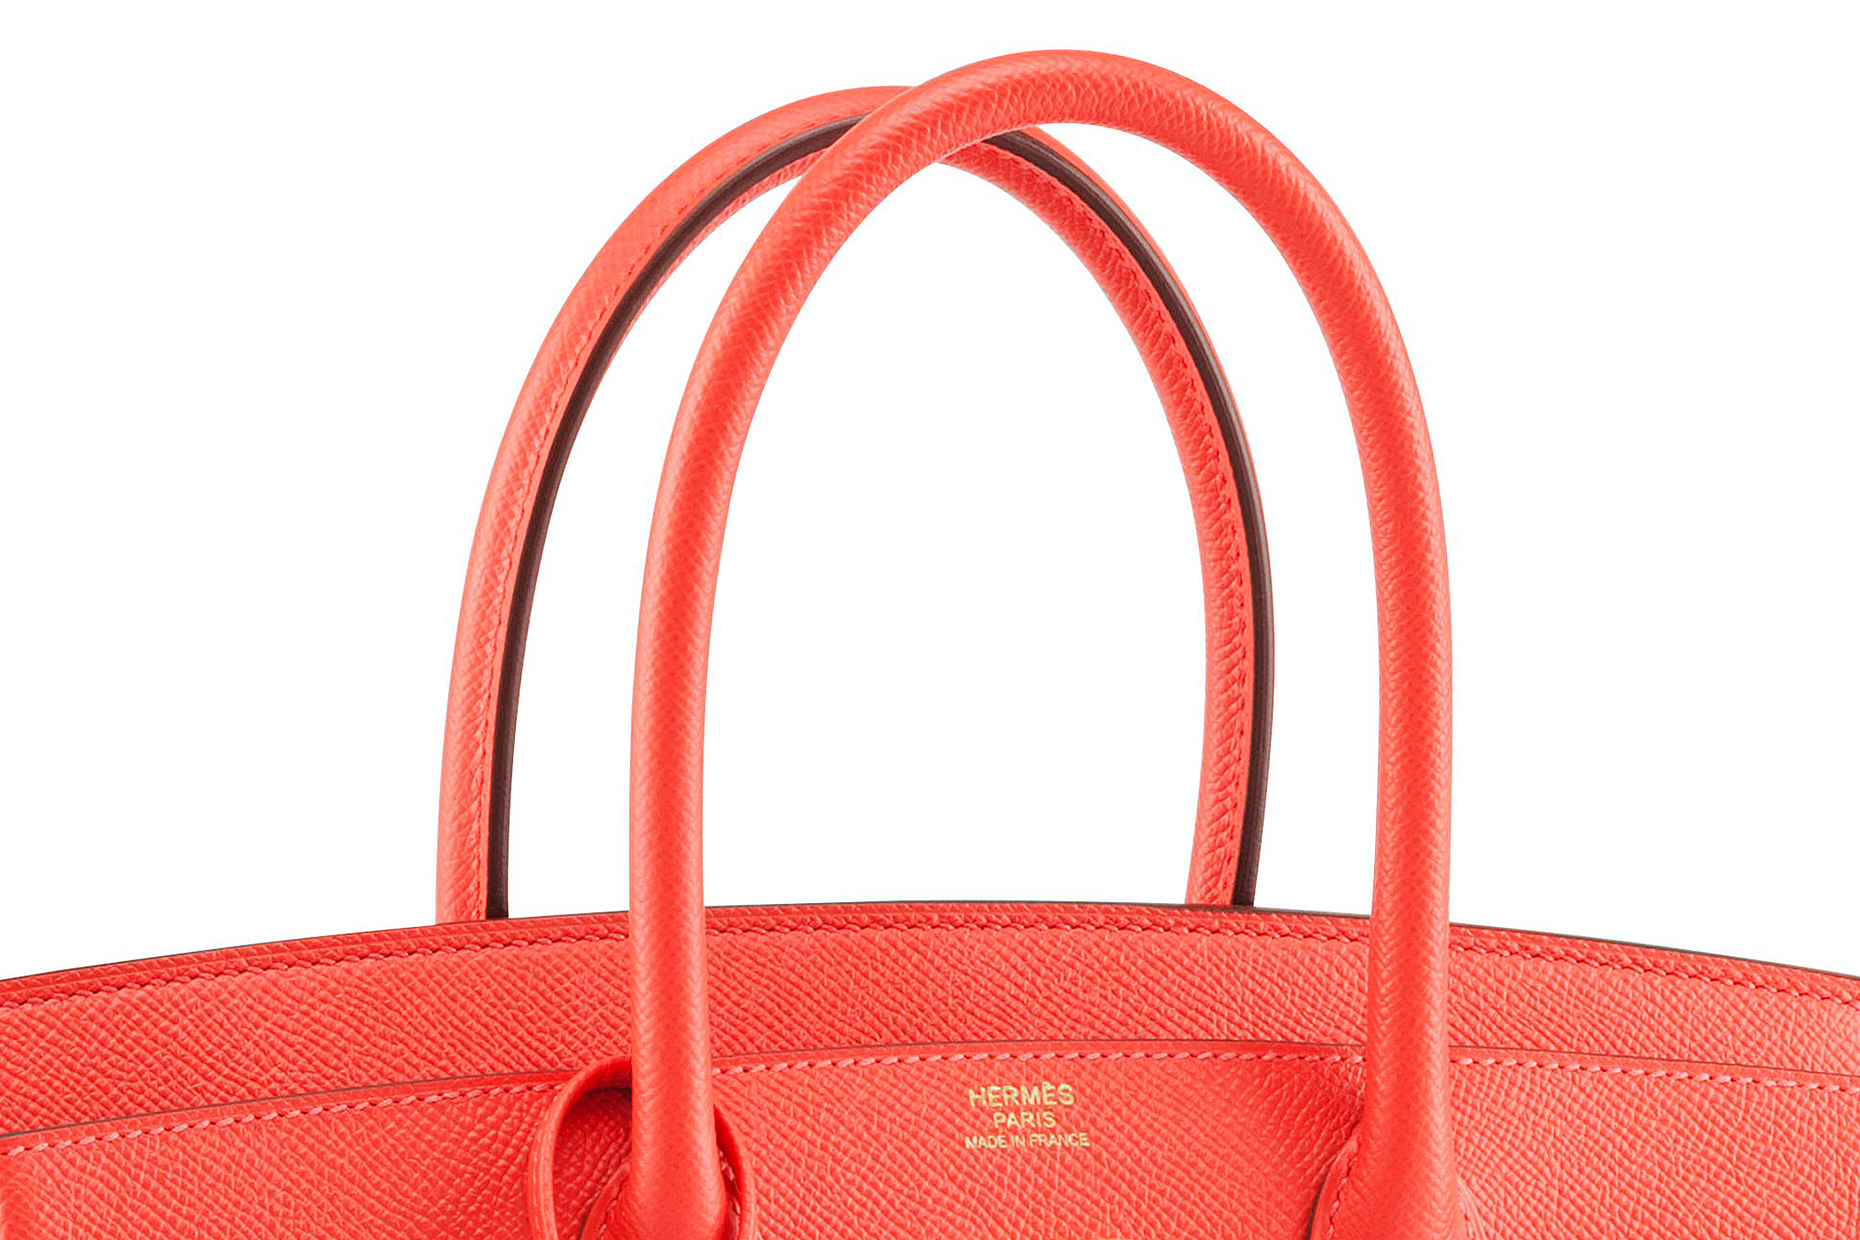 Top of red Hermes hand bag